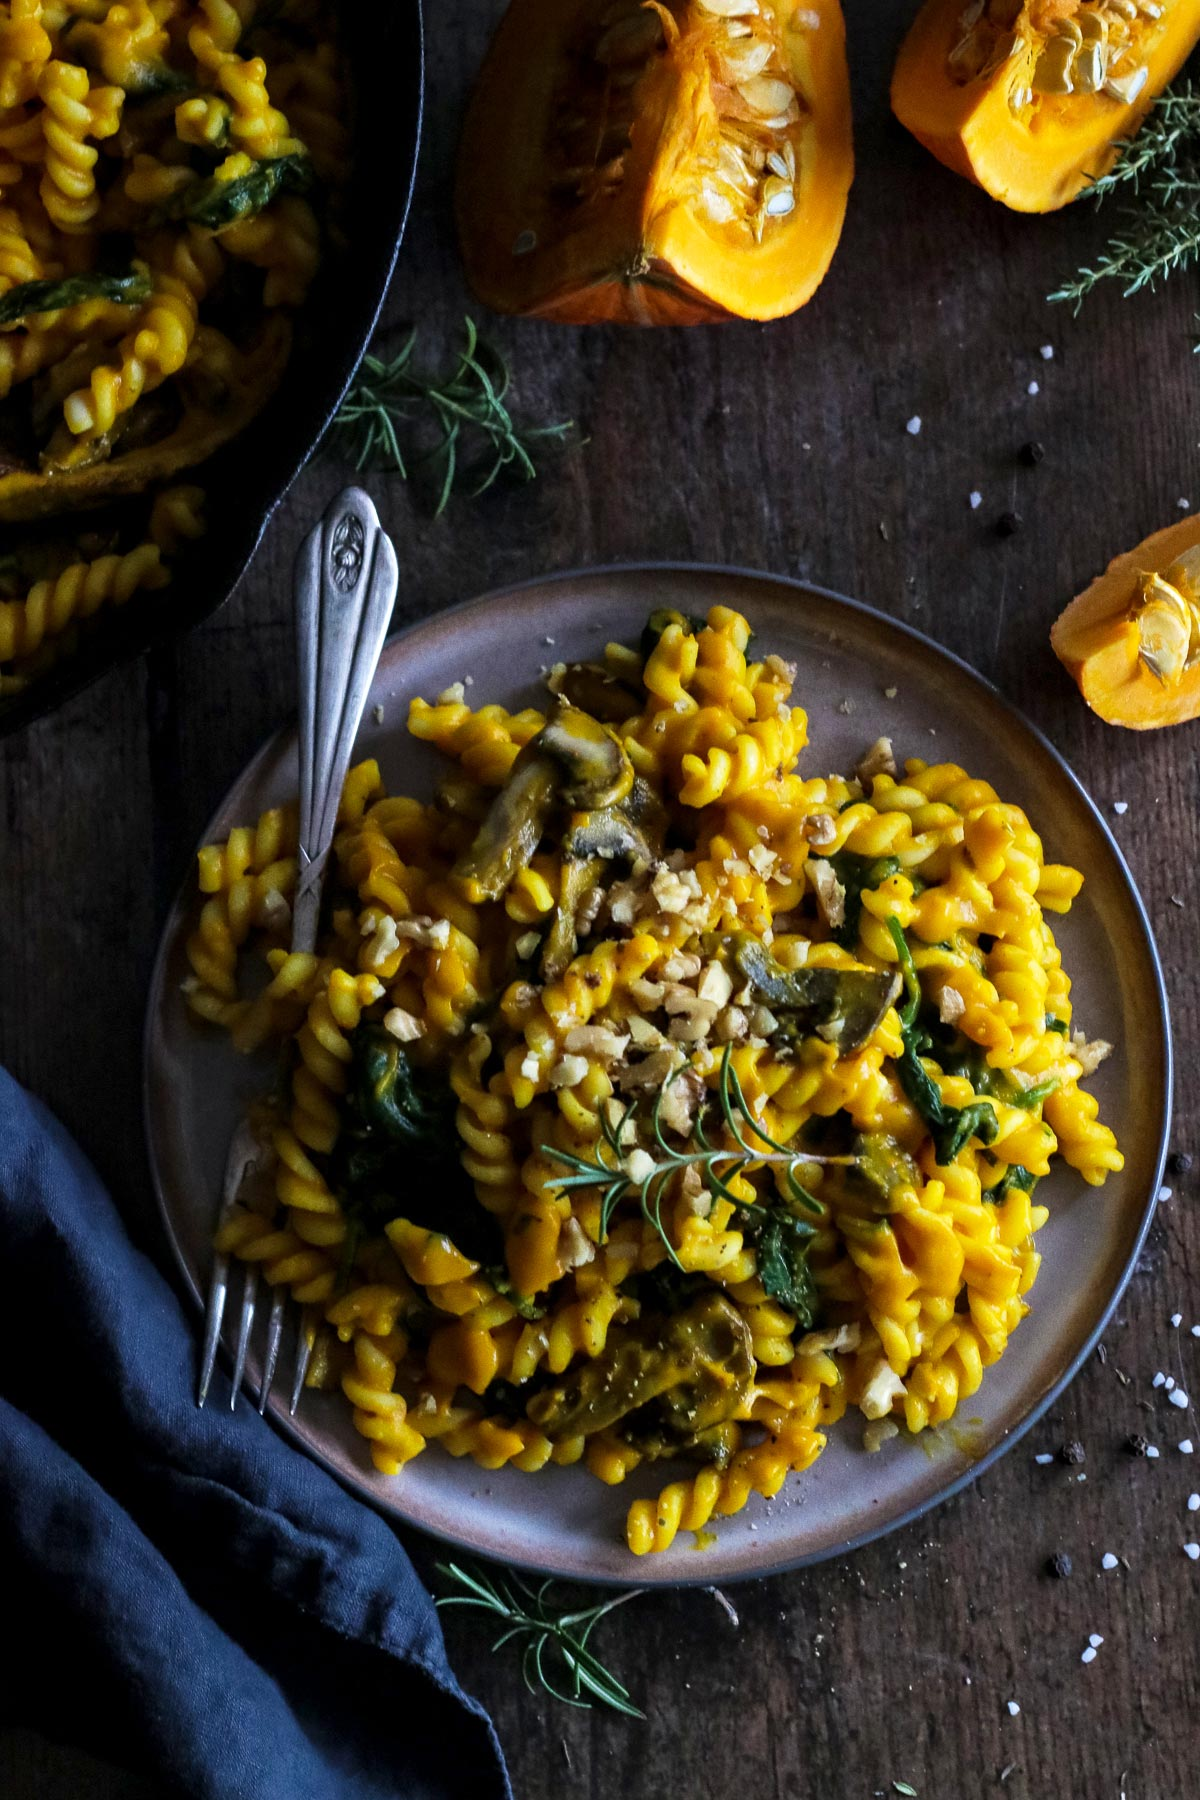 A Serving of Pumpkin Pasta with Mushrooms.